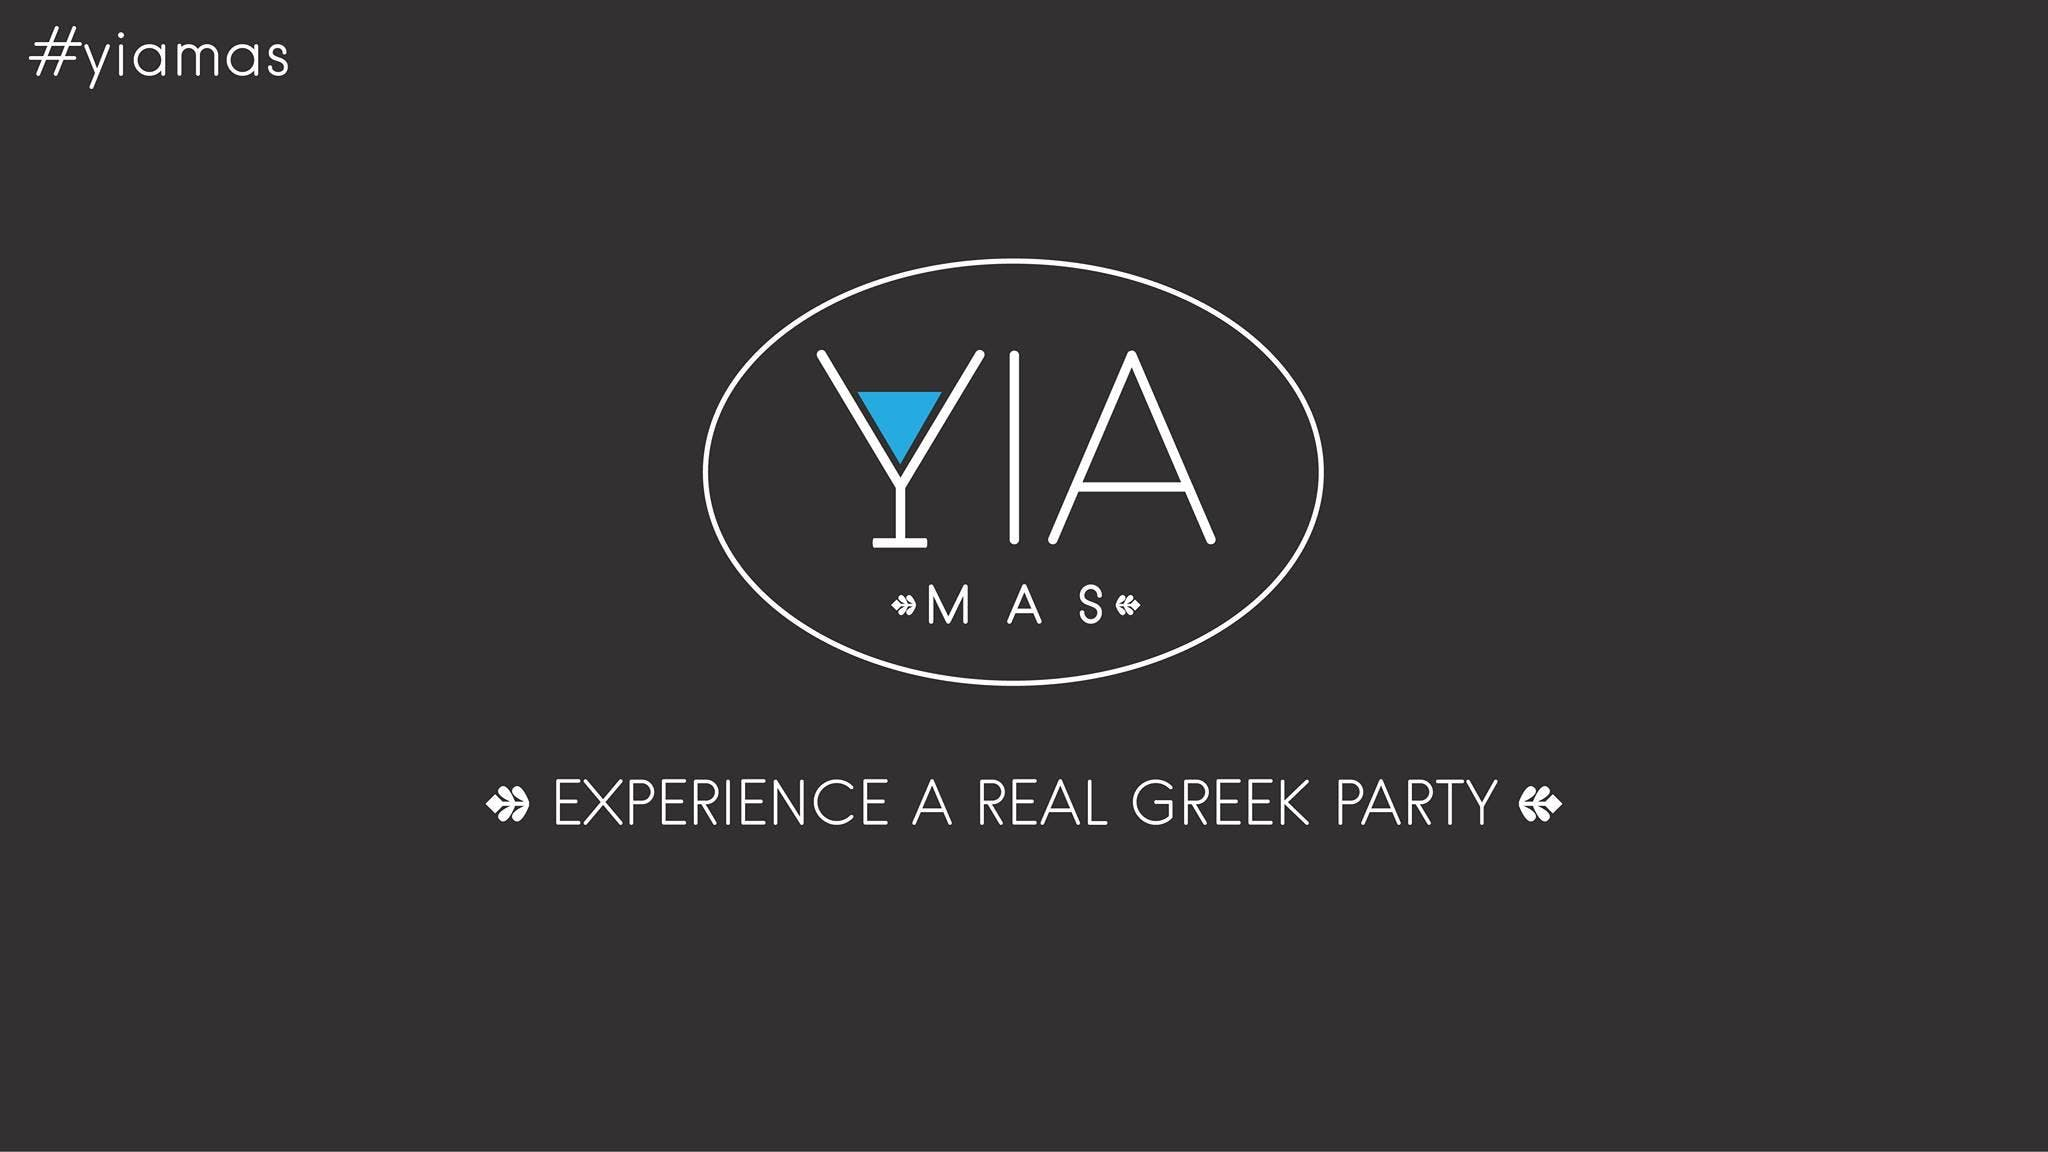 Yia Mas Greek Parties - No32 - Ouzo Μπερδέματ